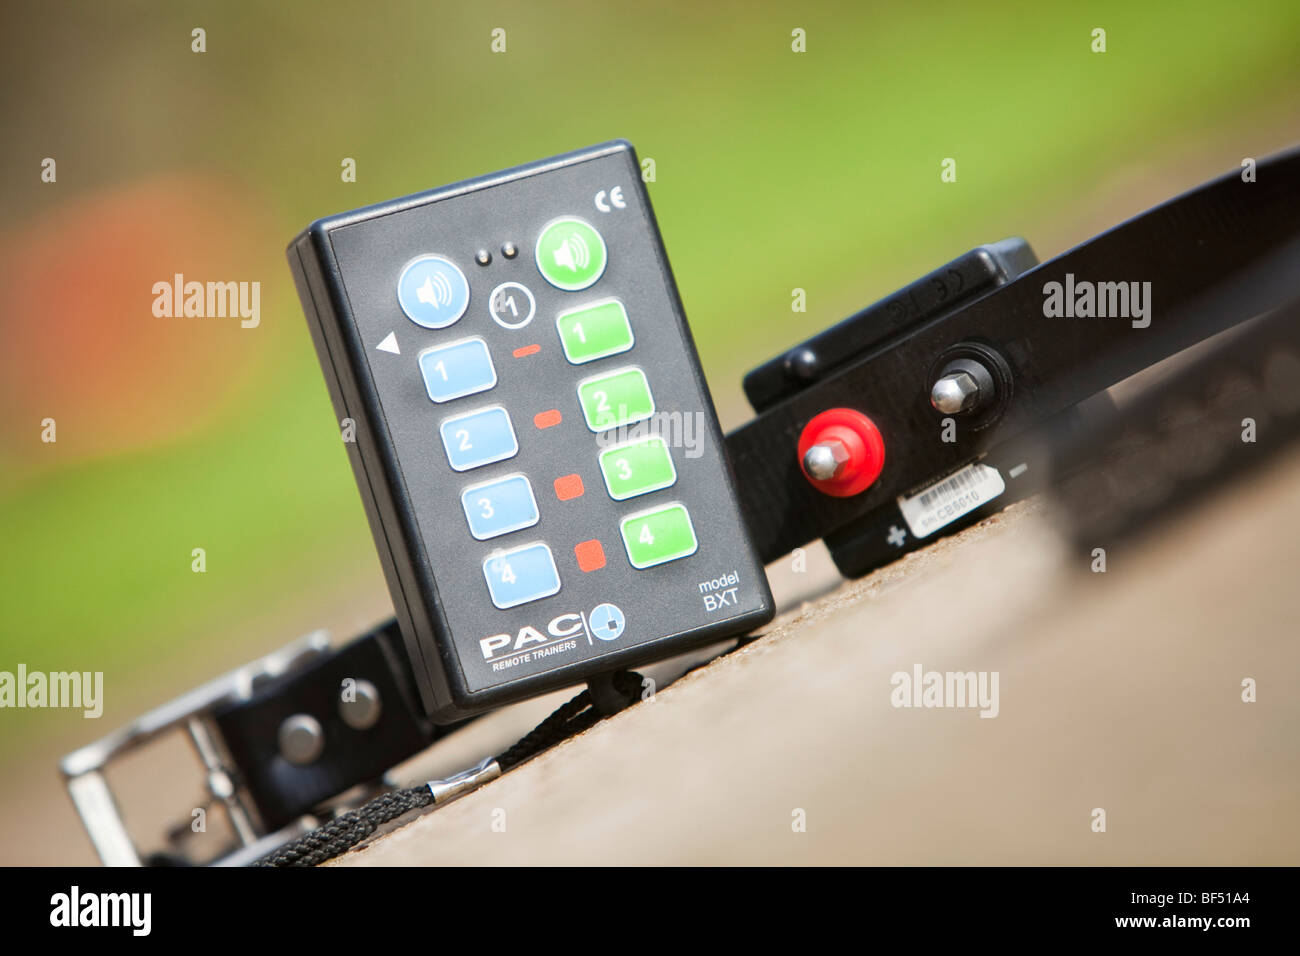 An electric shock dog training collar and remote hand-set - Stock Image